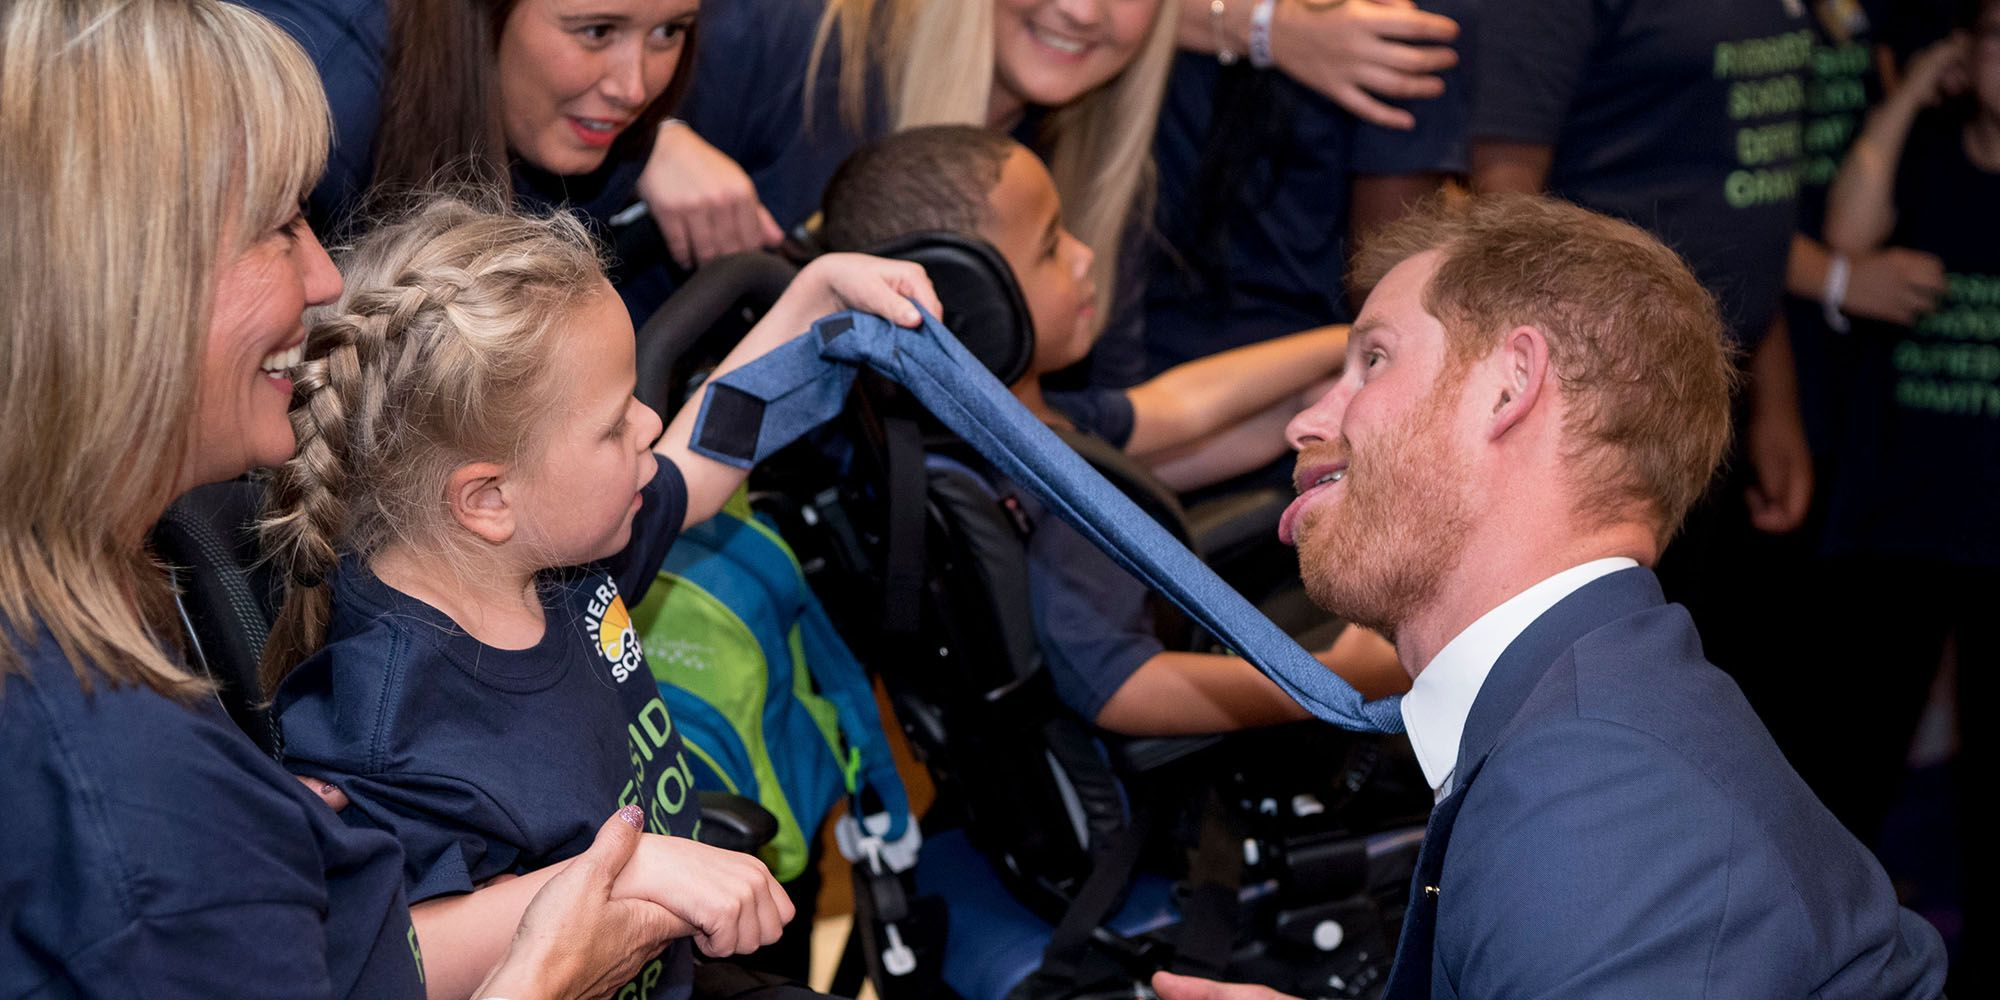 Meghan Markle and Prince Harry Had the Sweetest Moments with Kids at the WellChild Awards